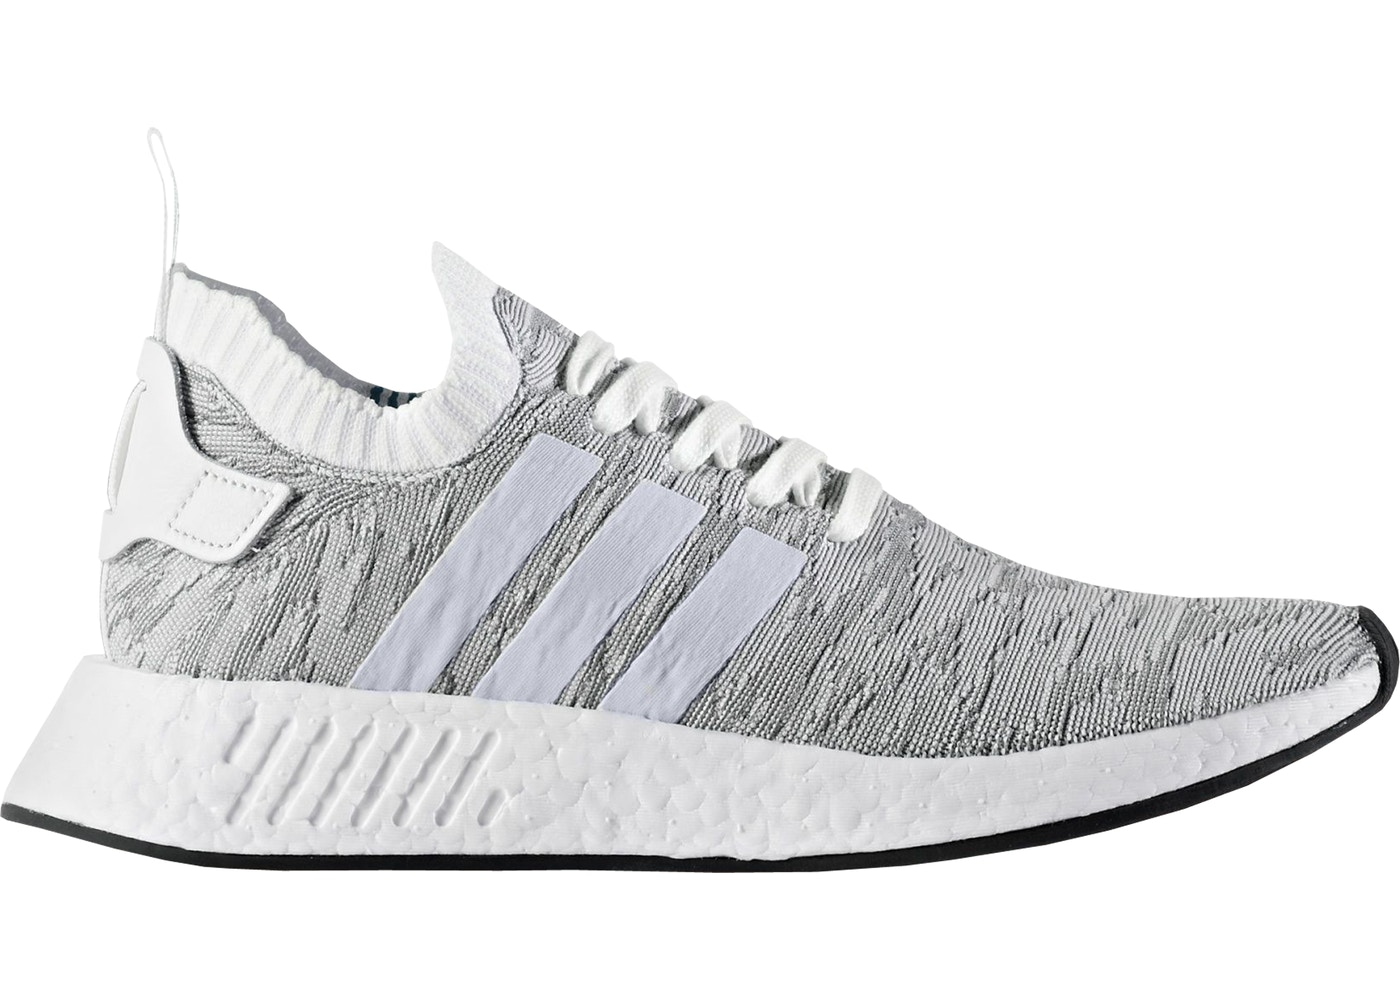 73d8dadb6 Sell. or Ask. Size  8.5. View All Bids. adidas NMD R2 Primeknit White Black